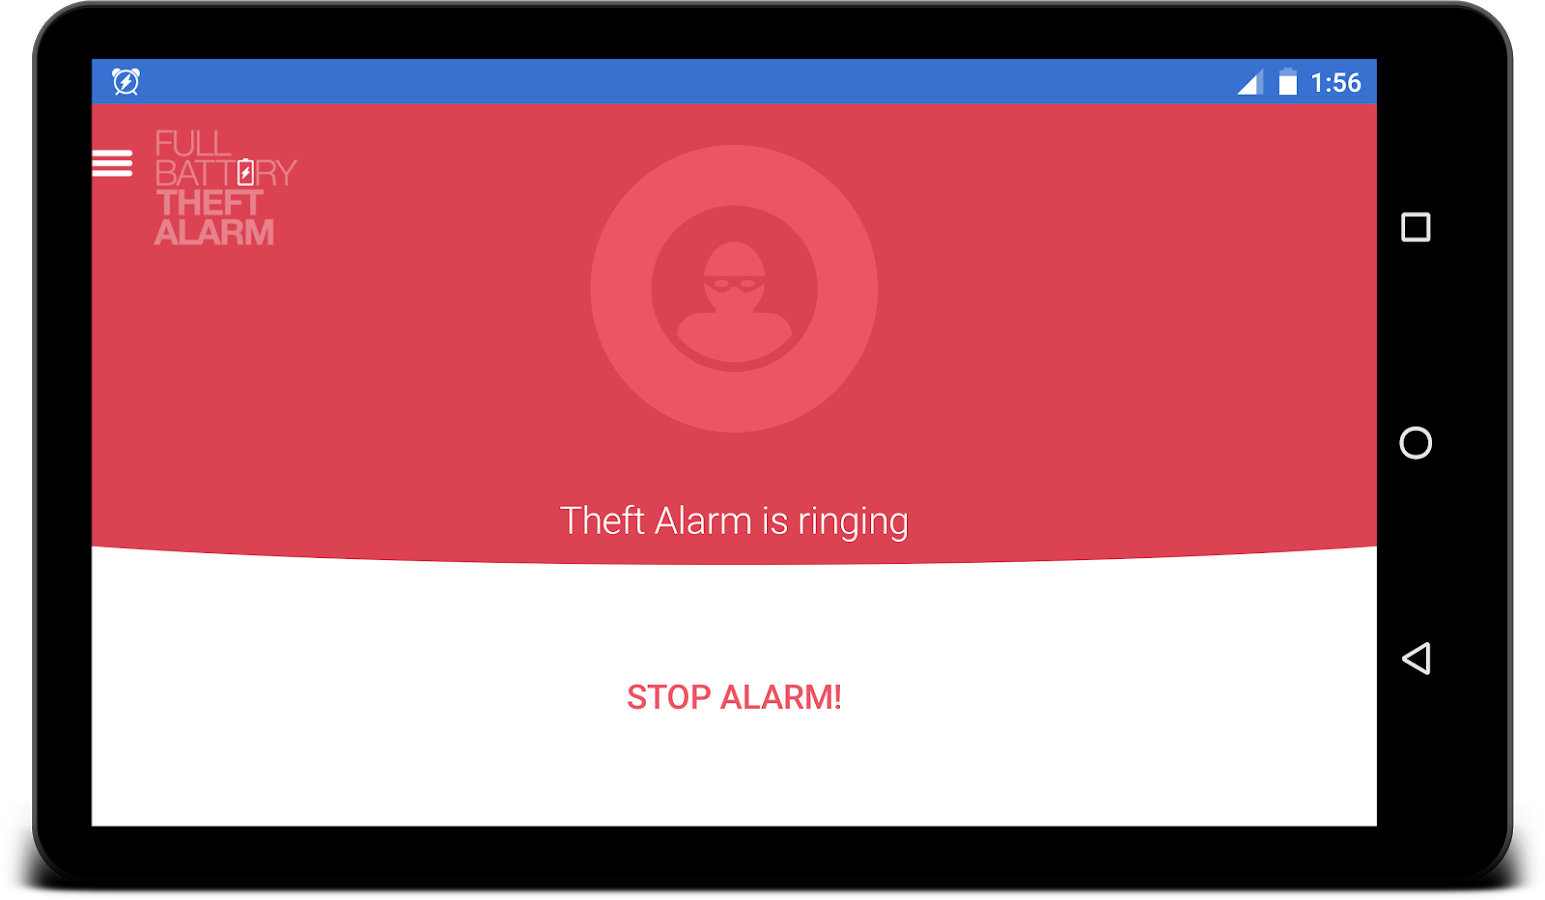 Full Battery & Theft Alarm- screenshot